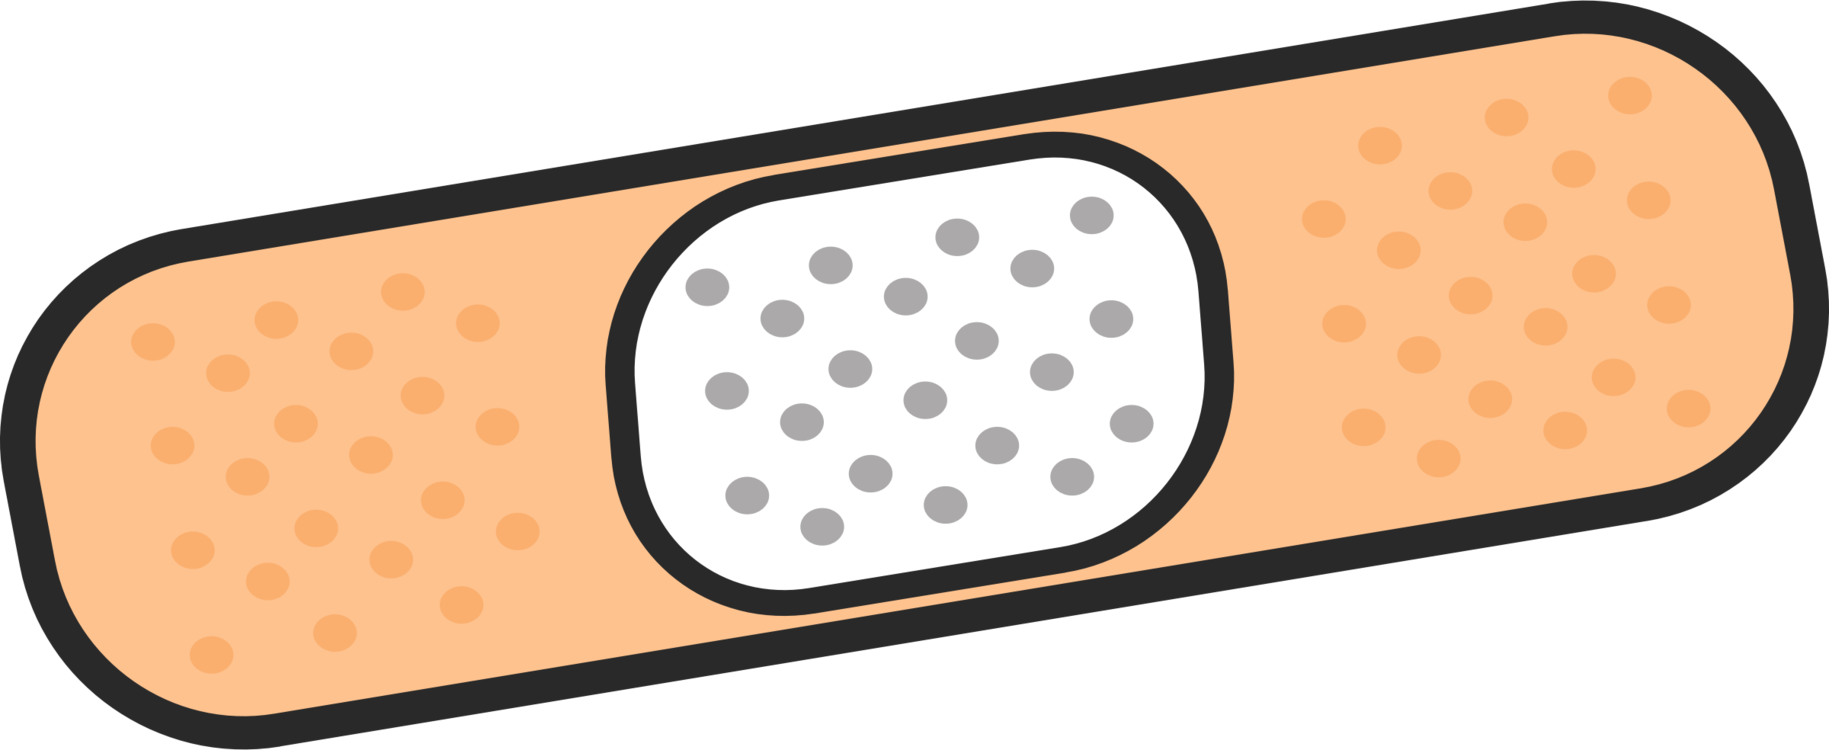 First aid clipart plaster. Adhesive bandage band supplies